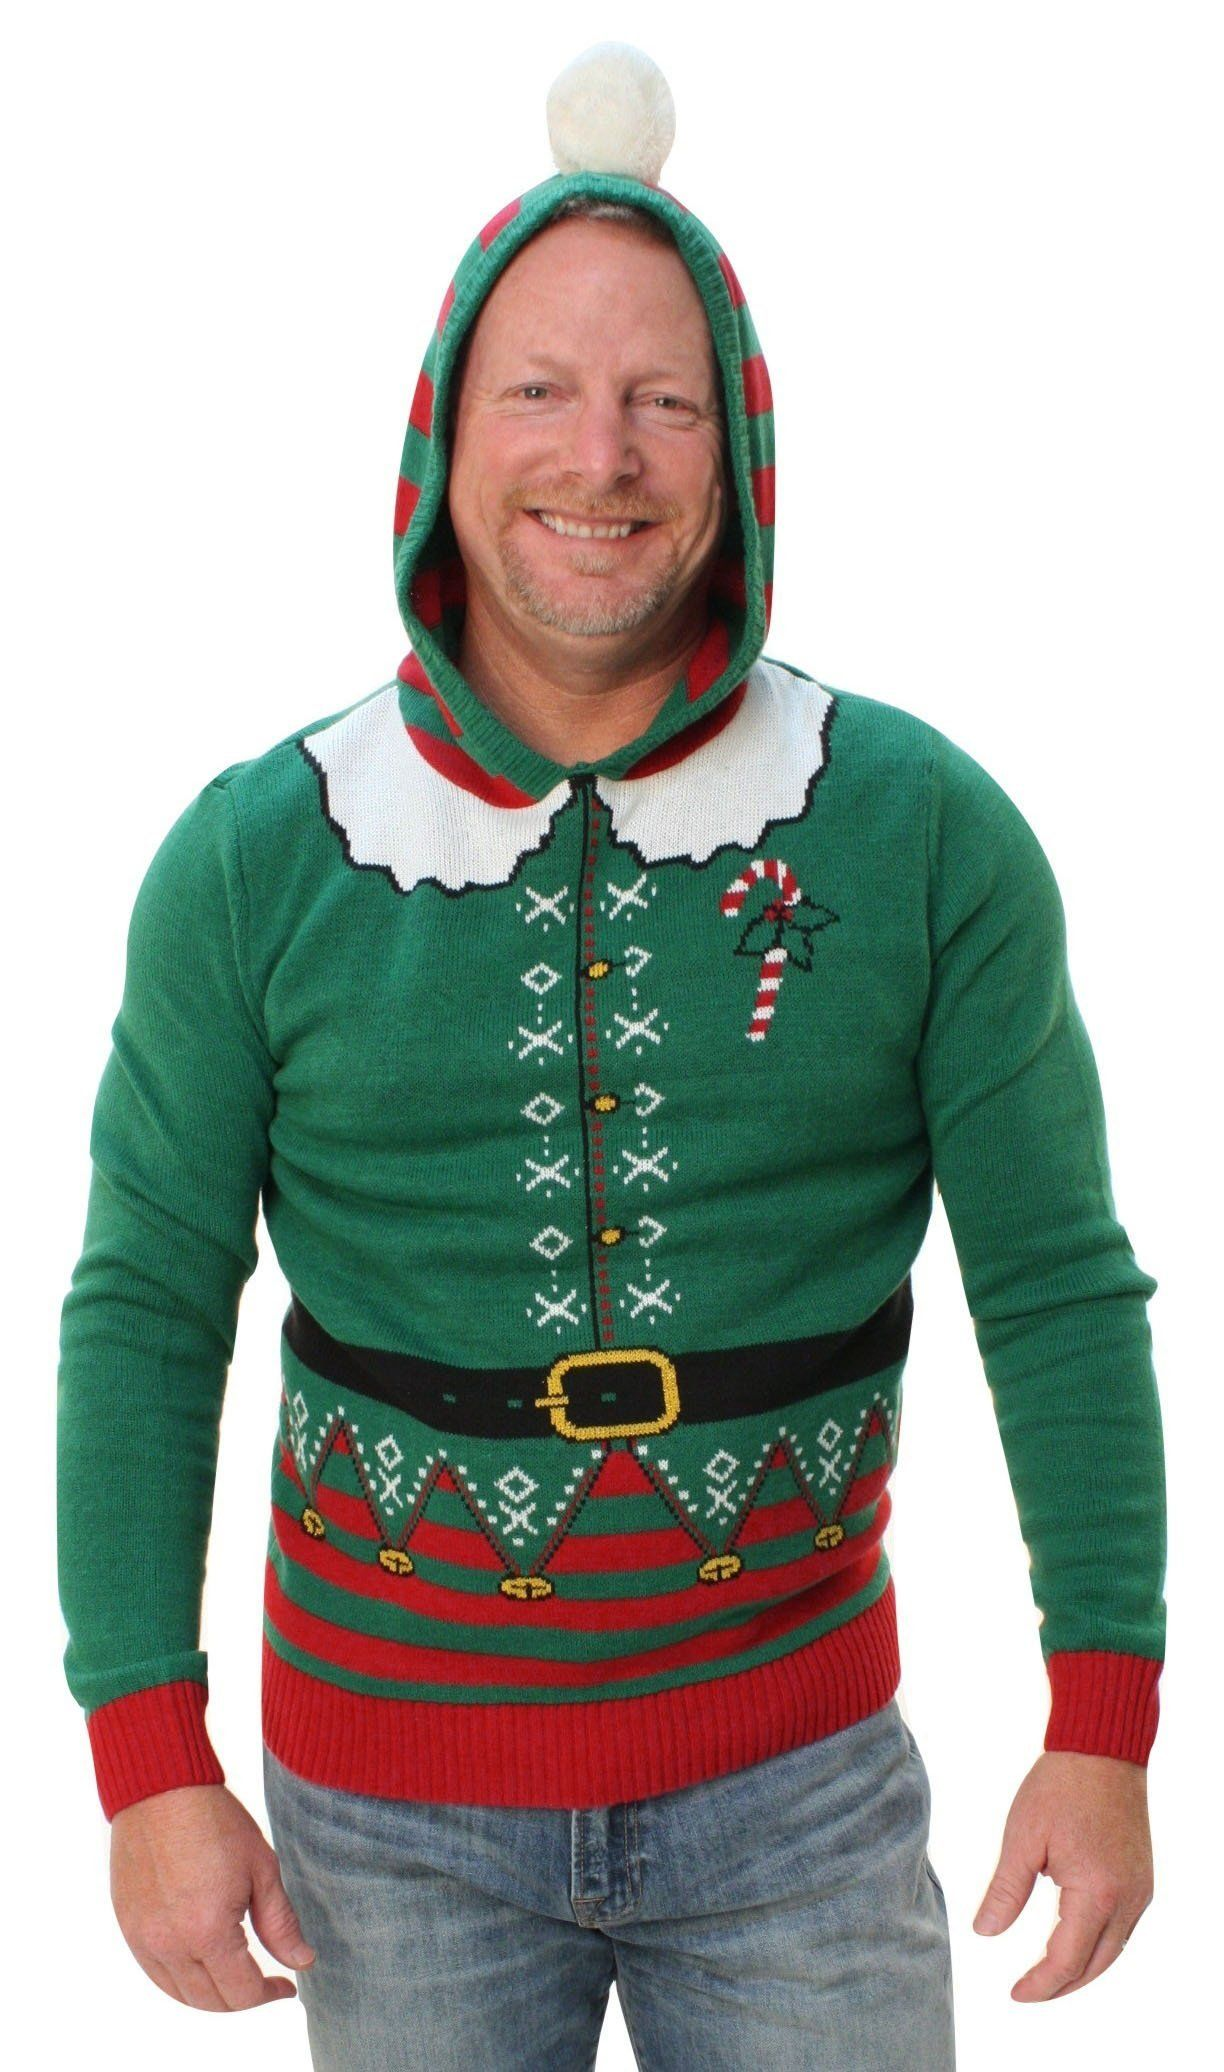 699e30c102bd04 Ugly Christmas Sweater Men's Elf Hooded Pullover Sweatshirt ...